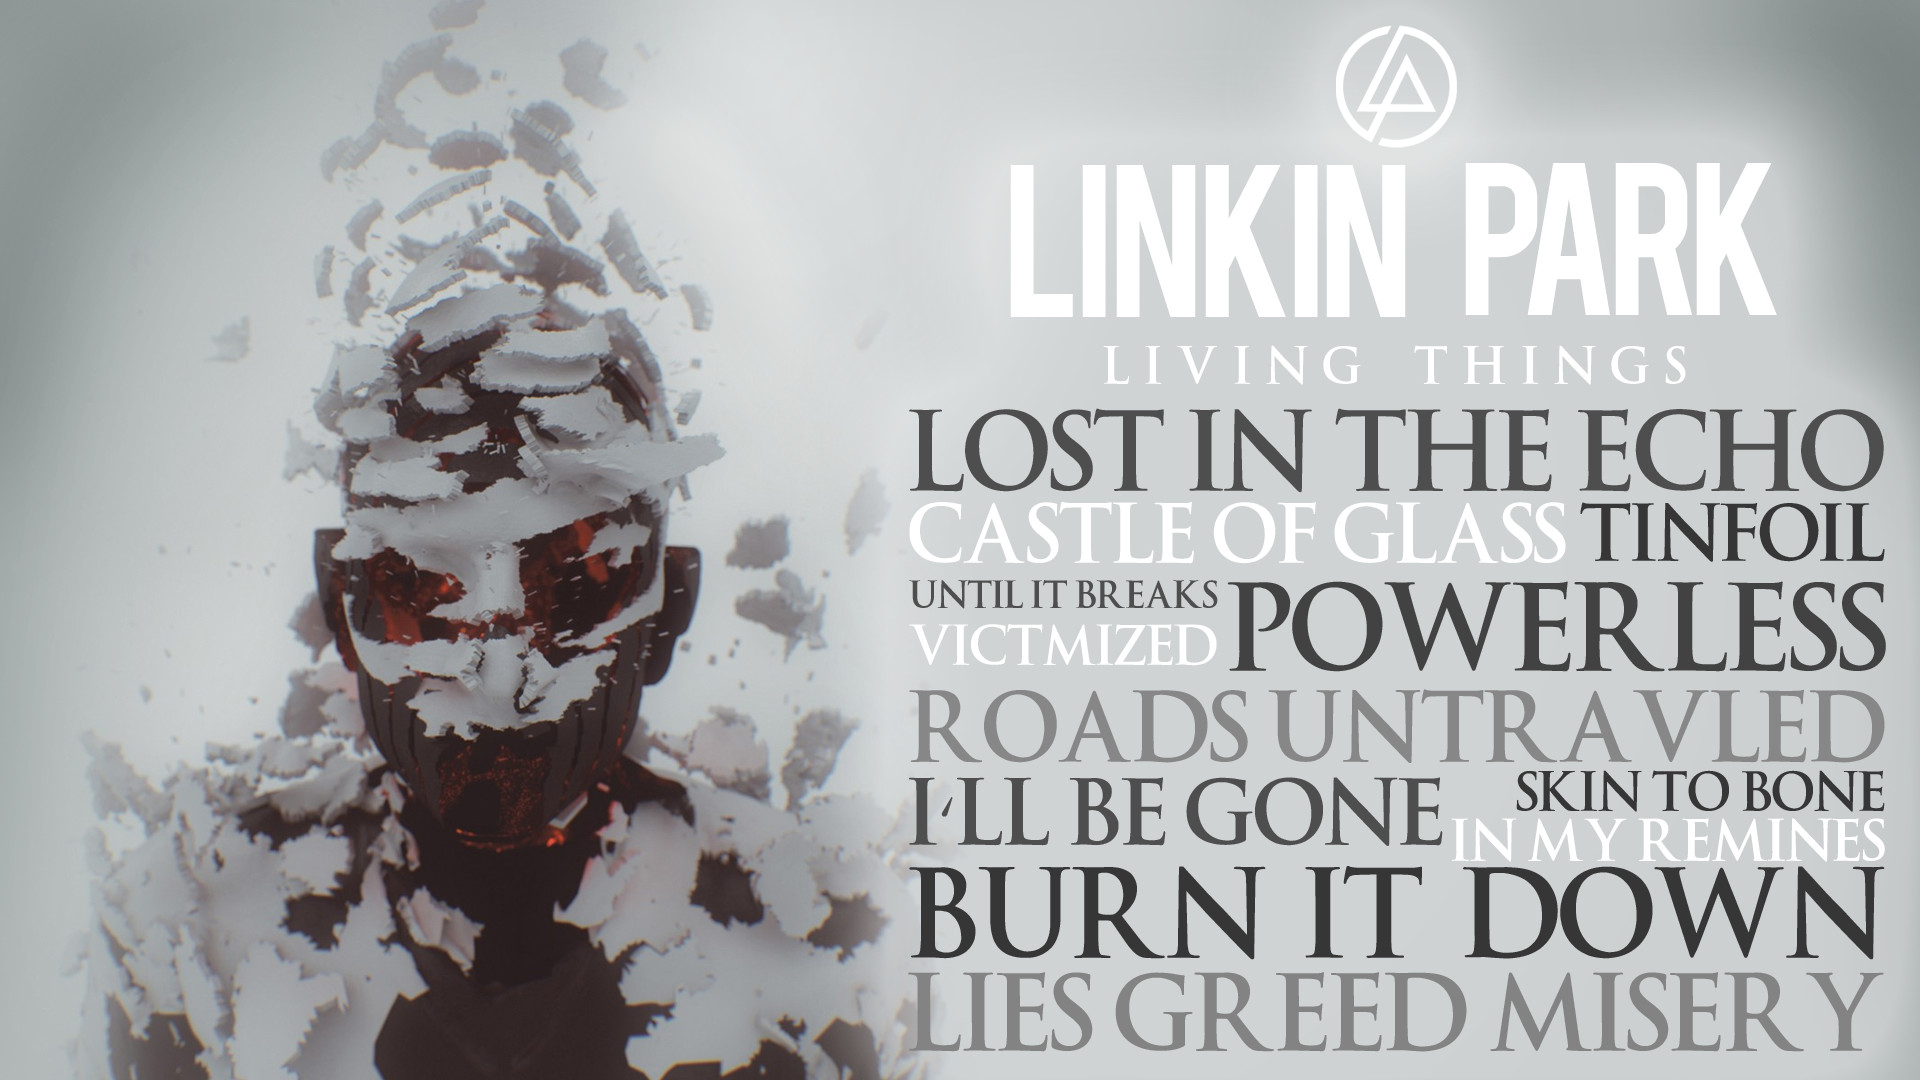 Top 10 Punto Medio Noticias | Linkin Park Meteora Full Album Free